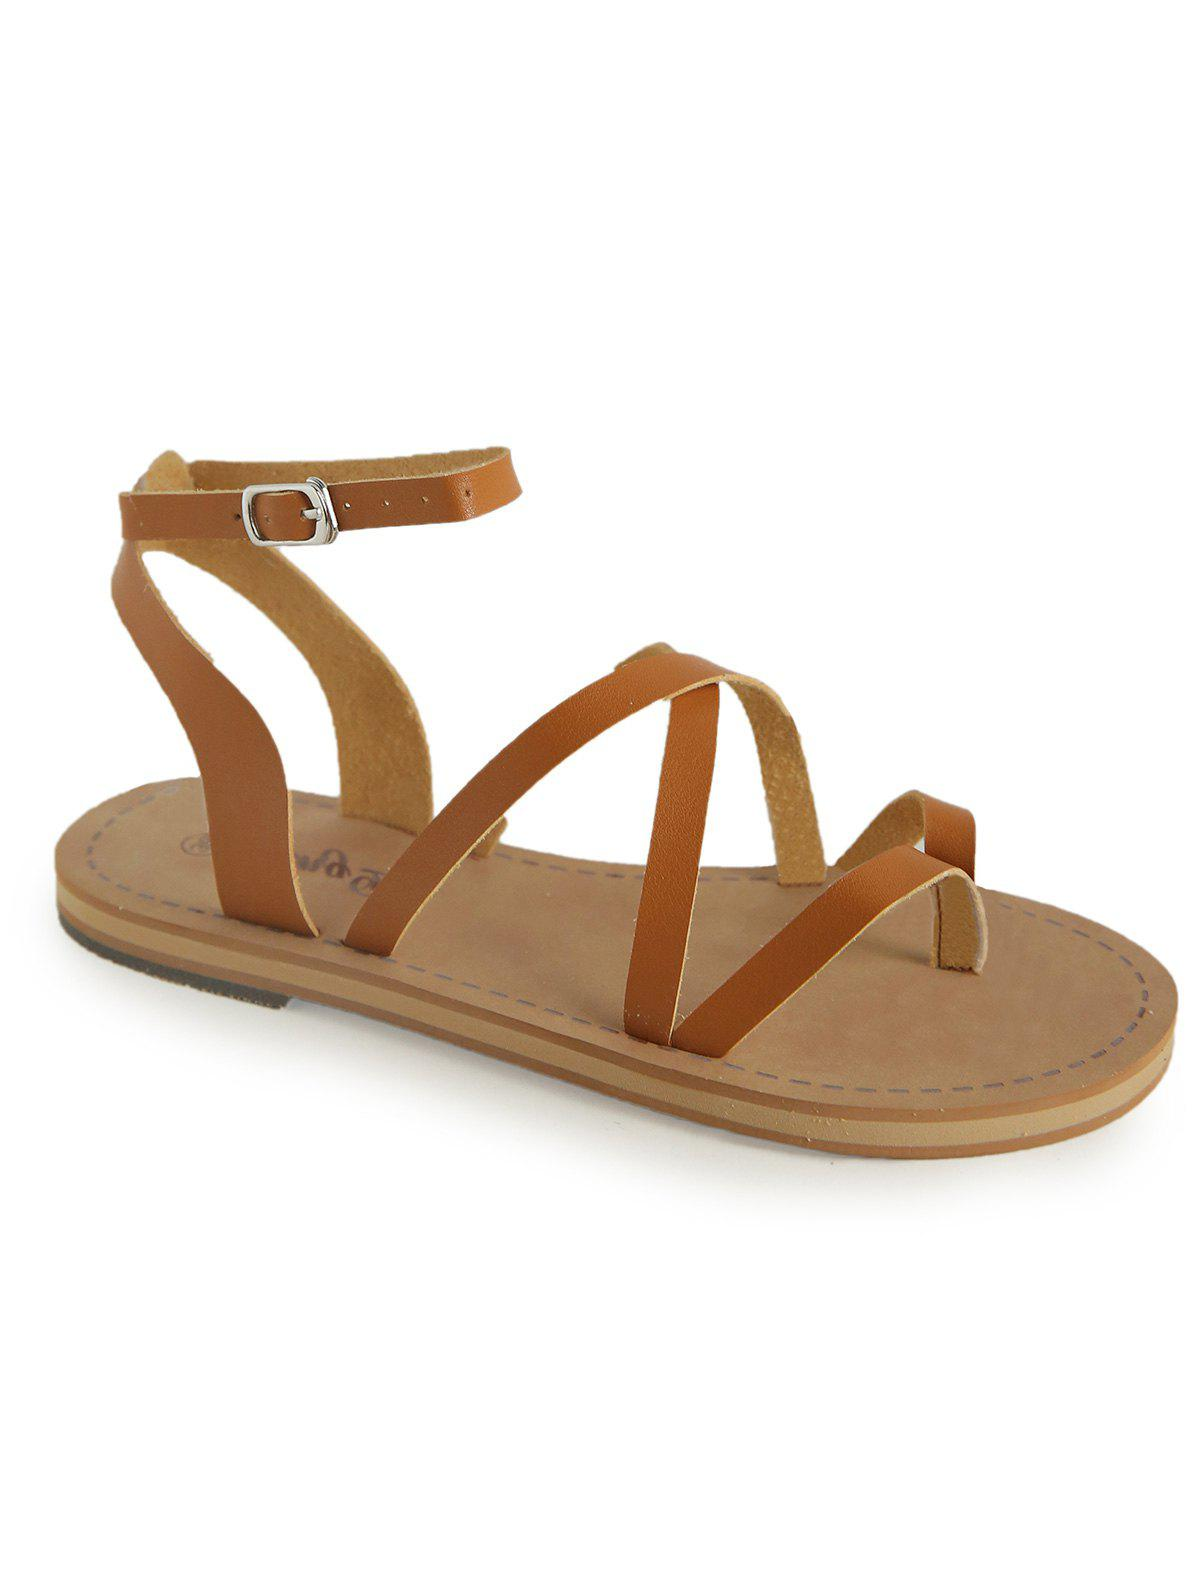 Store Casual Holiday Ankle Strap Thong Sandals